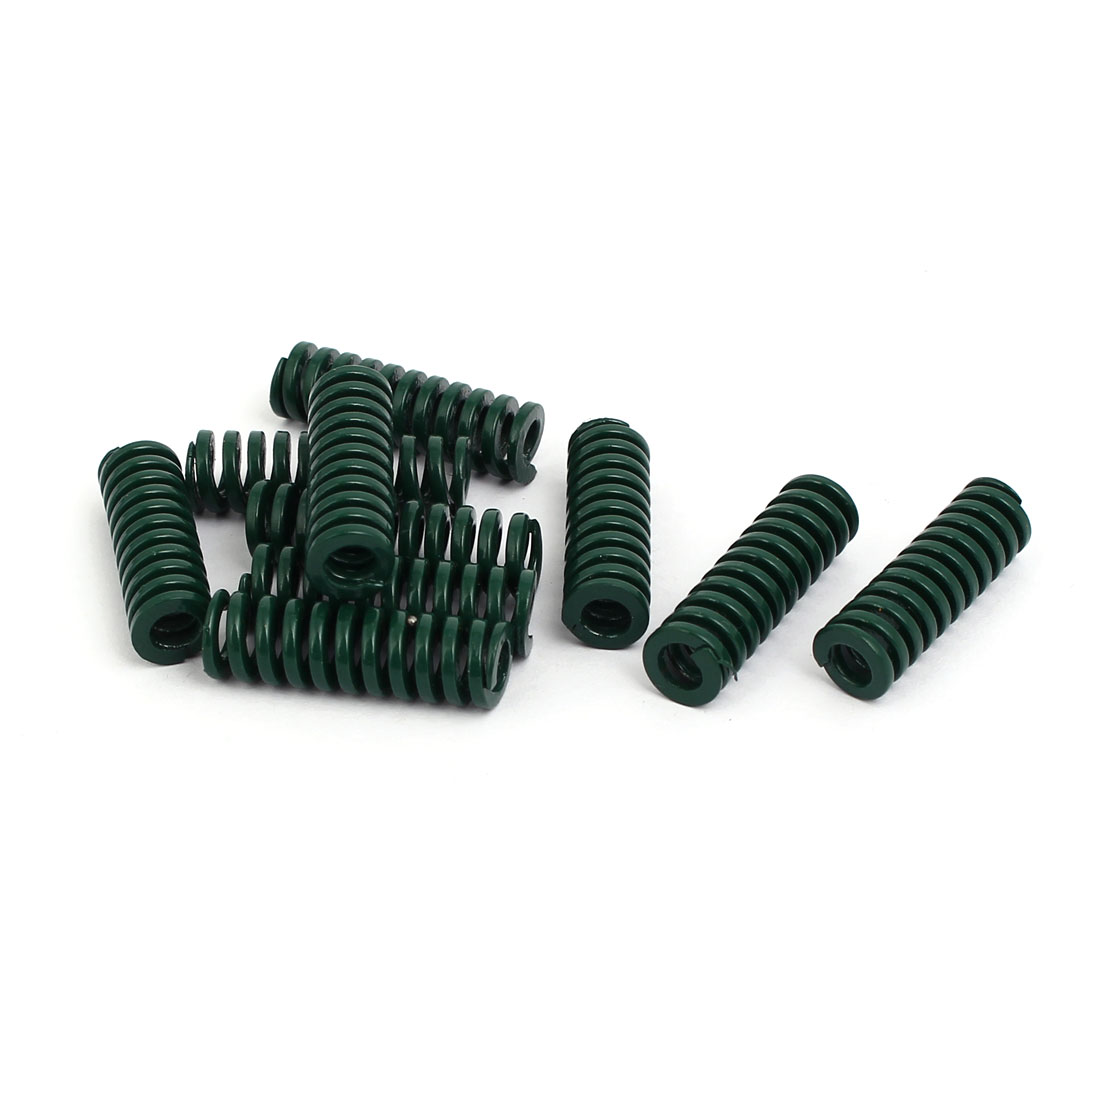 8mm OD 25mm Free Length Heavy Load Compression Mould Die Spring Green 10pcs